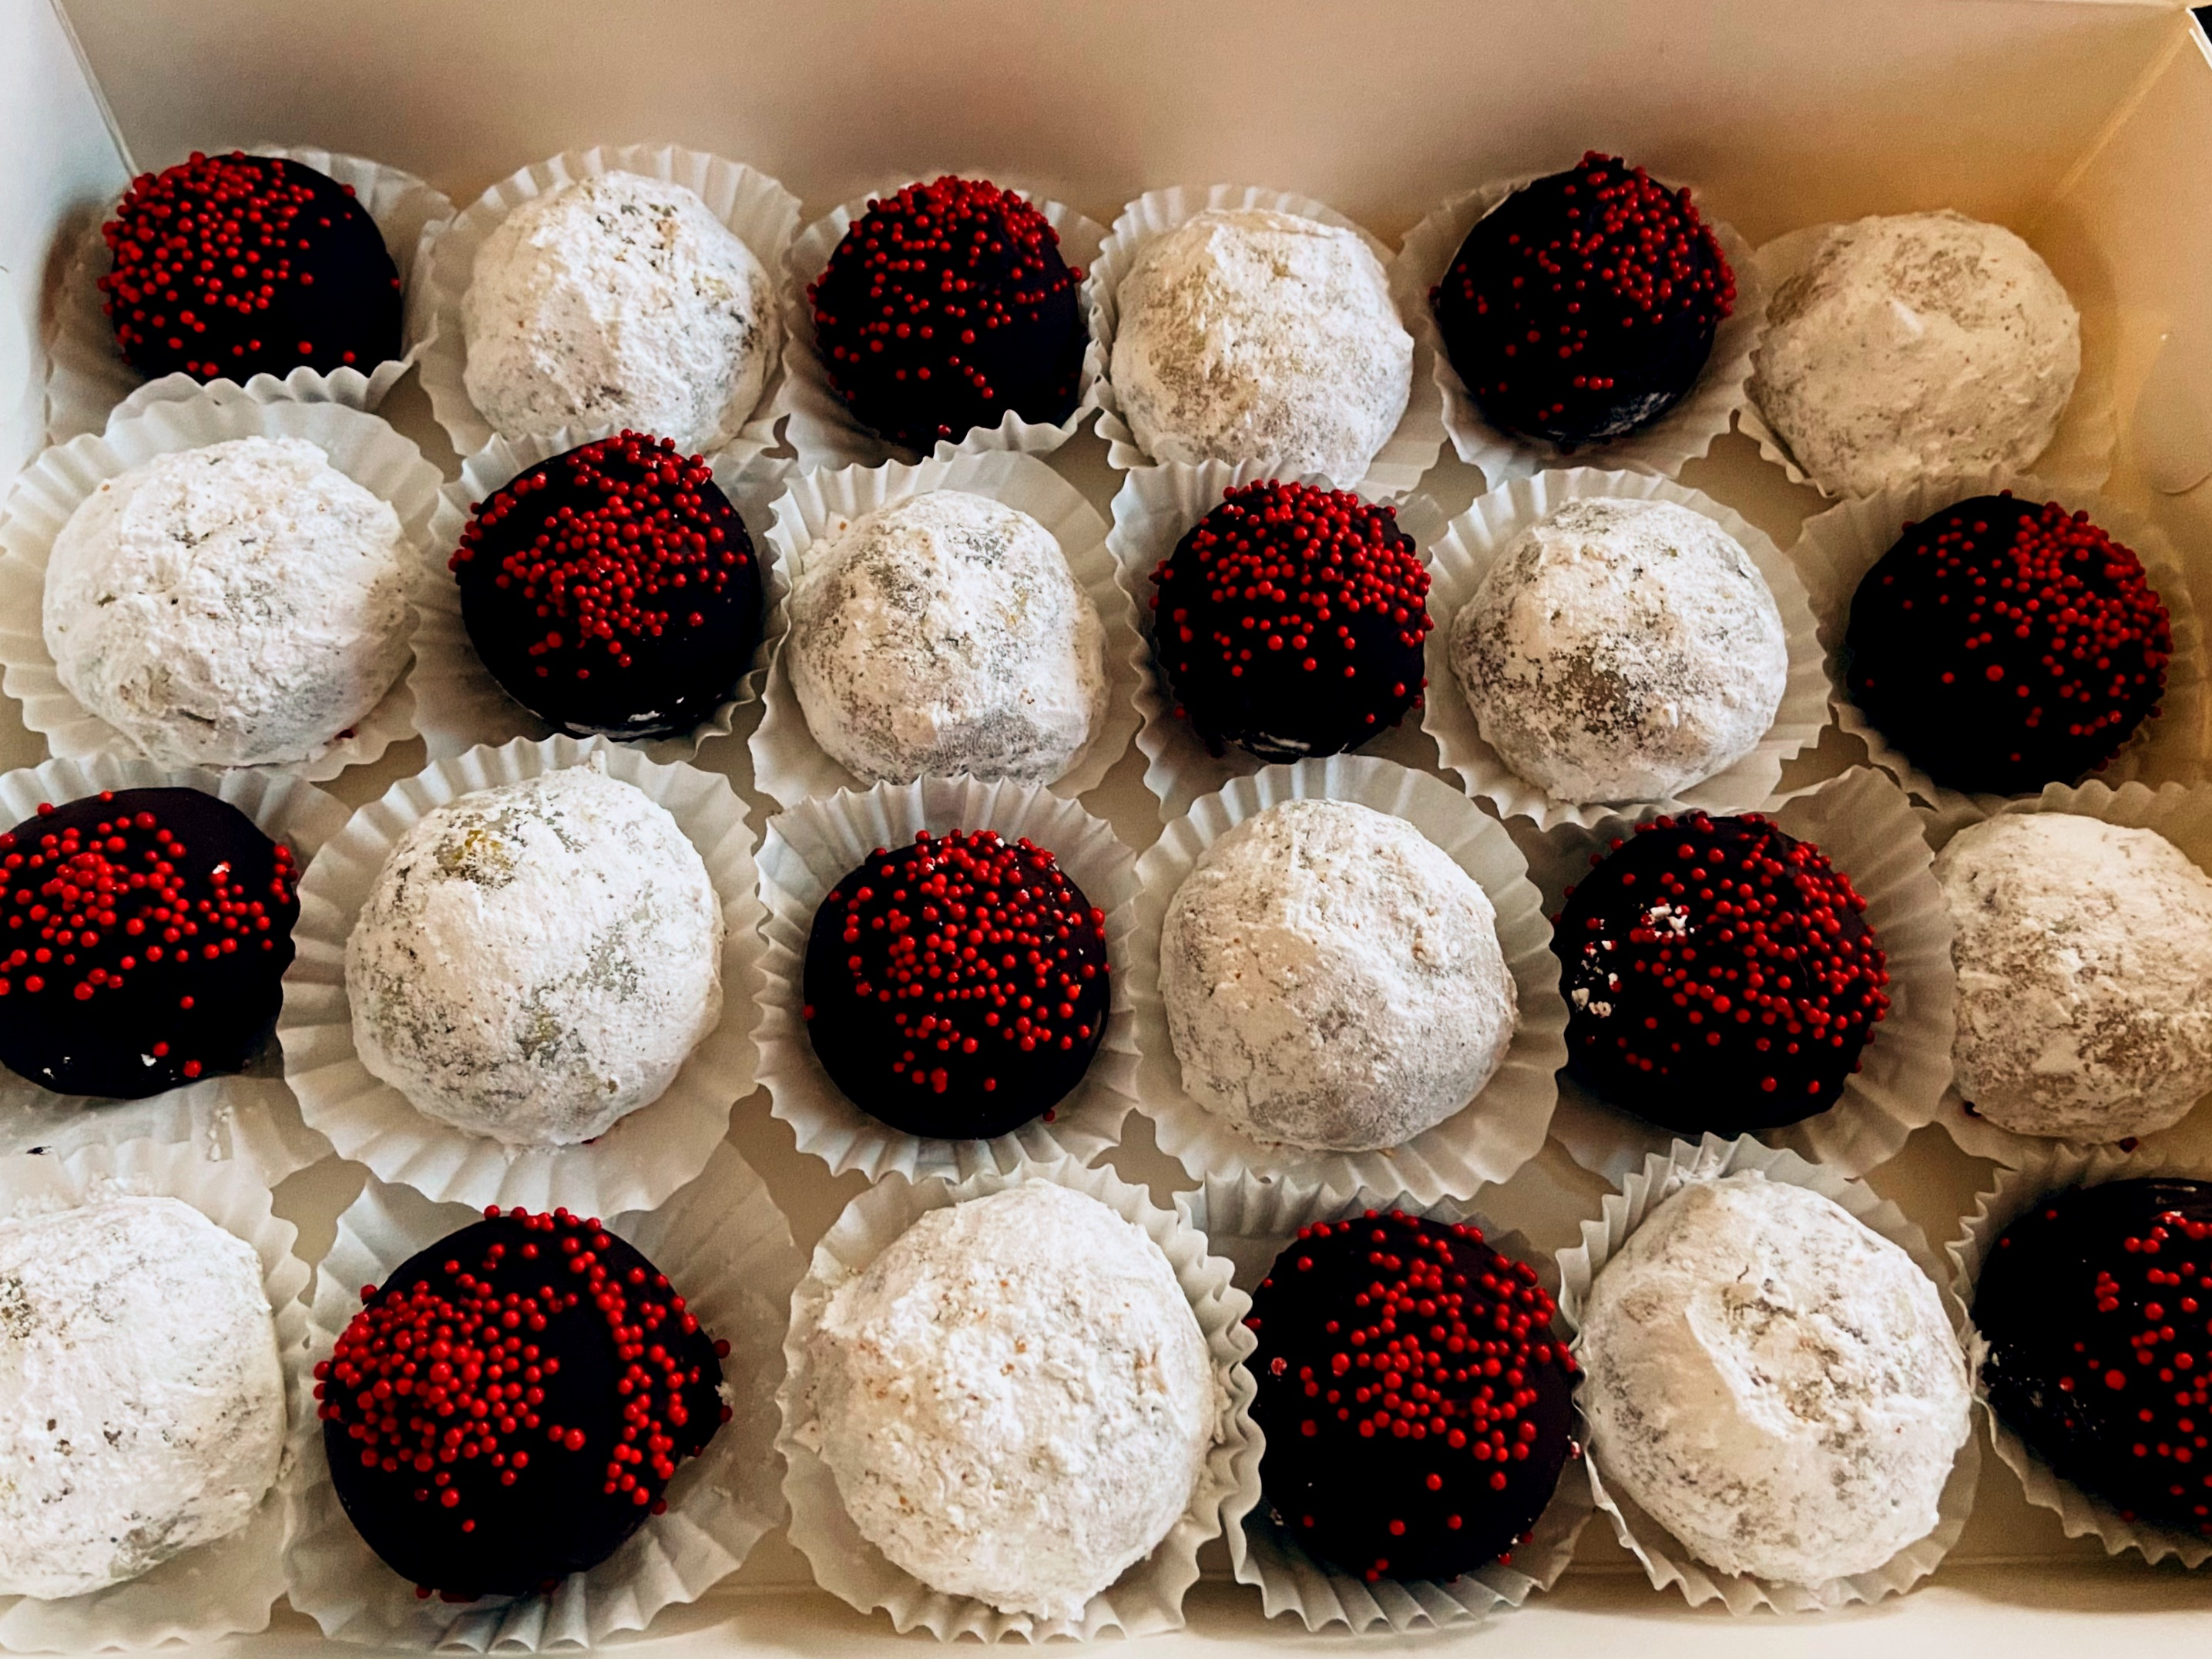 Reds and Whites (Peanut Butter Truffles and Hot Cocoa Snowballs)